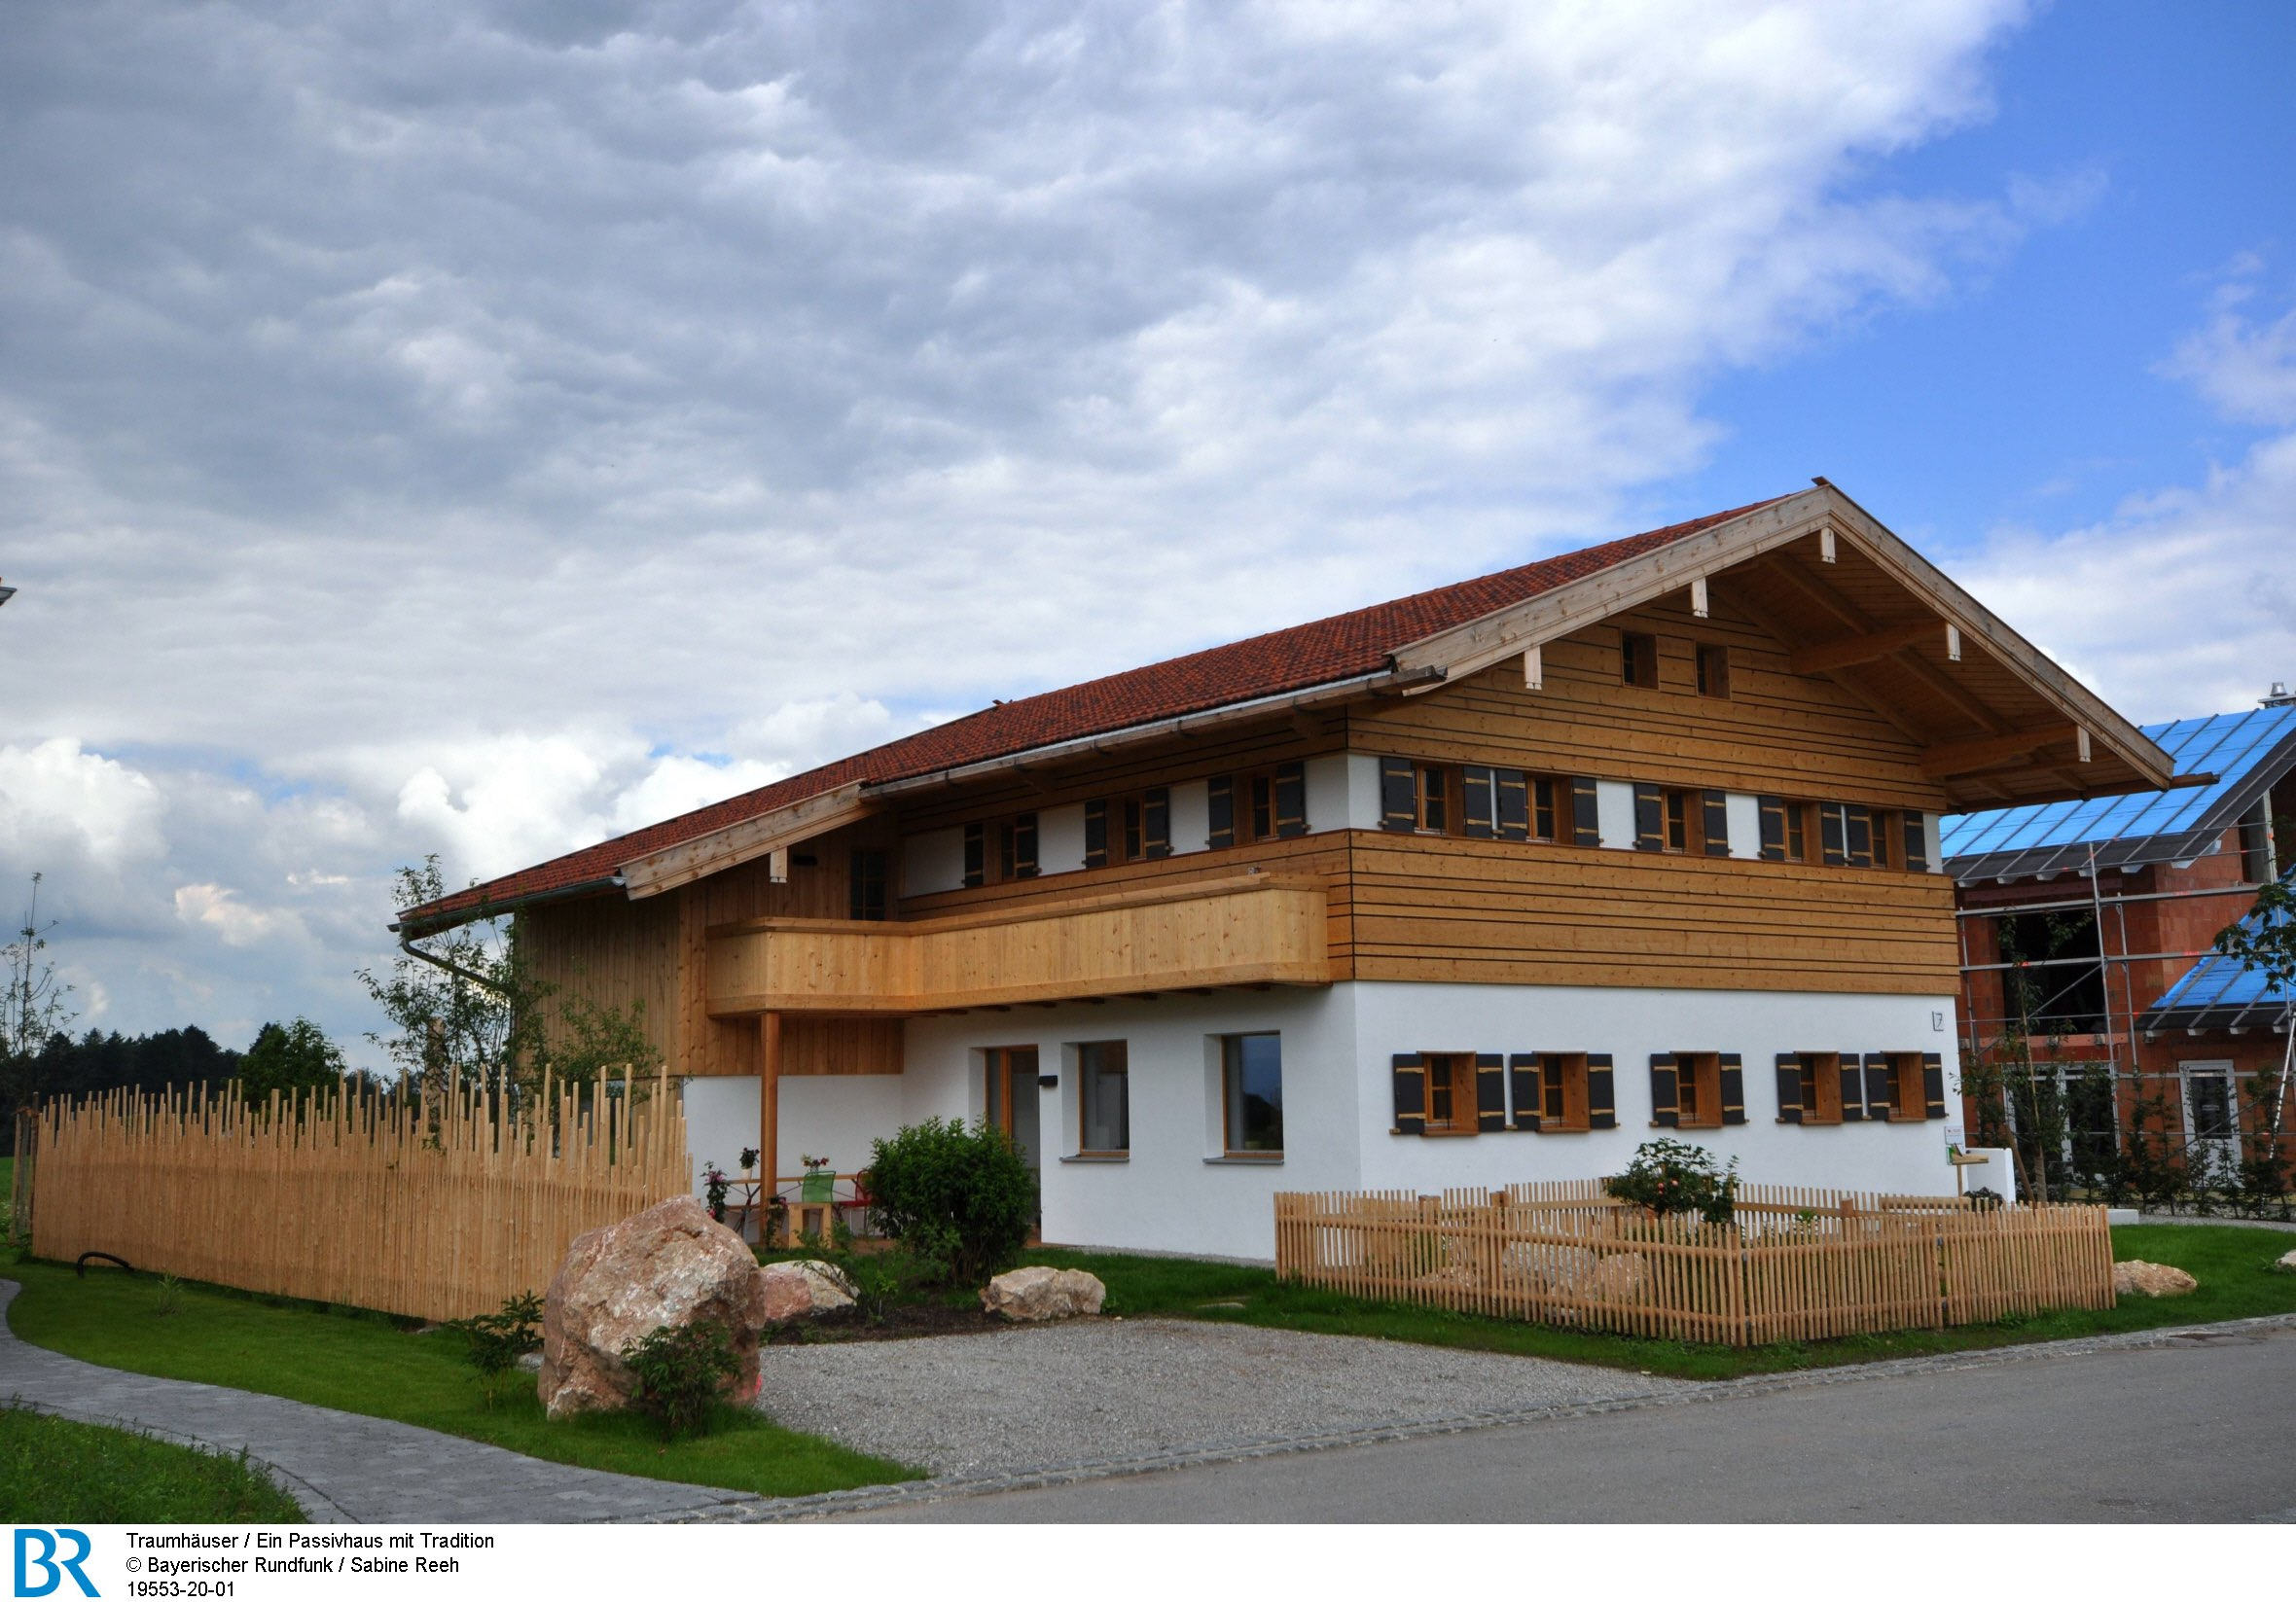 Magazin raumhäuser: in Passivhaus mit radition archimag size: 2360 x 1647 post ID: 0 File size: 0 B